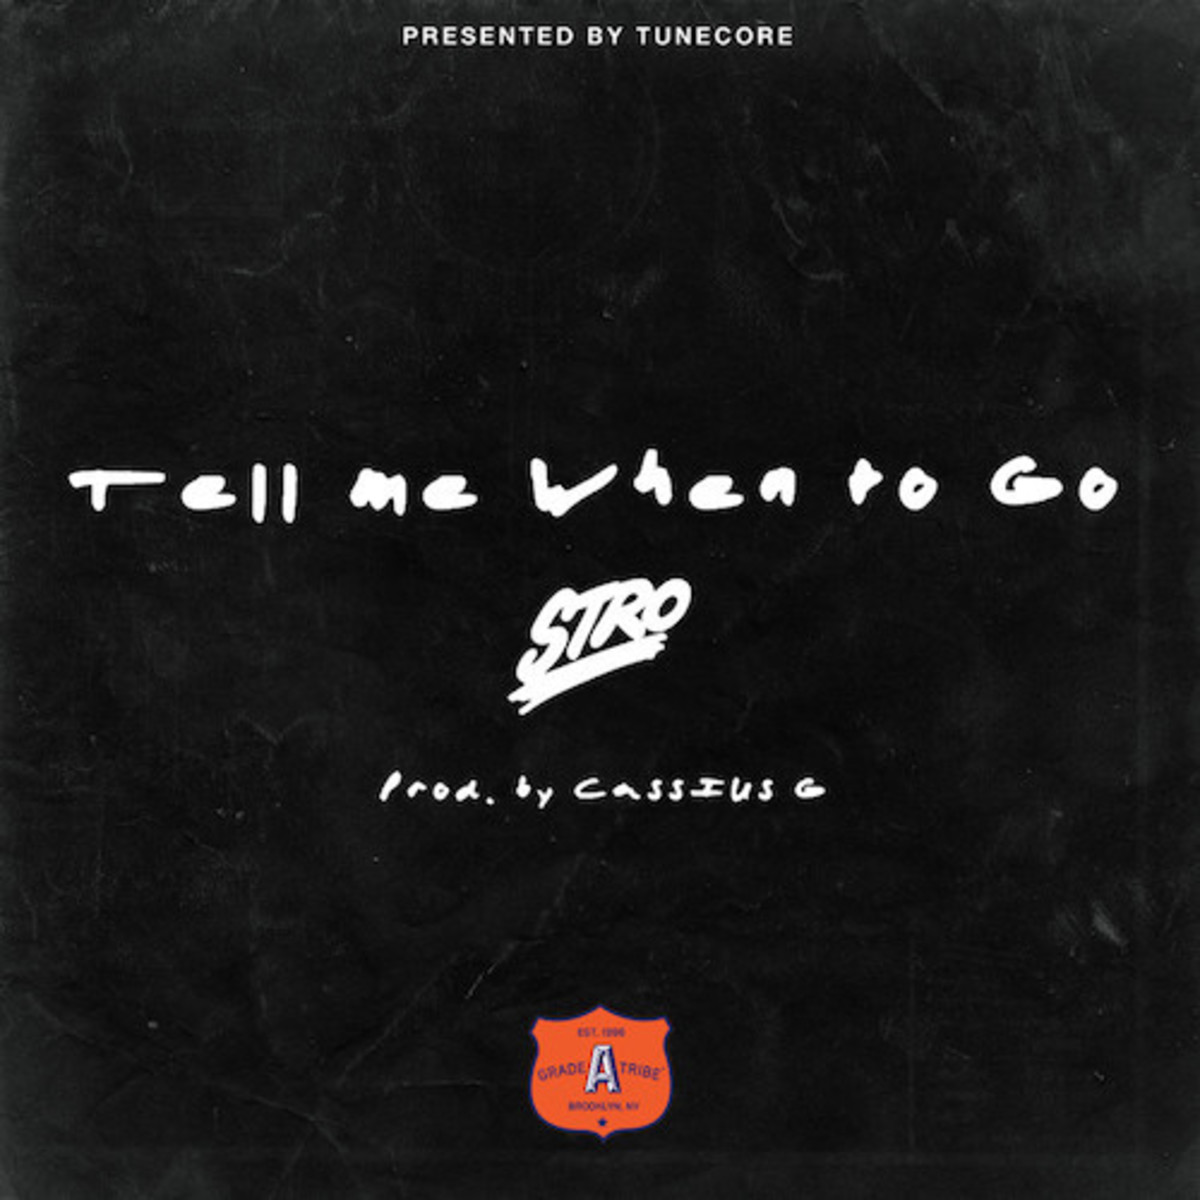 stro-tell-me-when-to-go.jpg